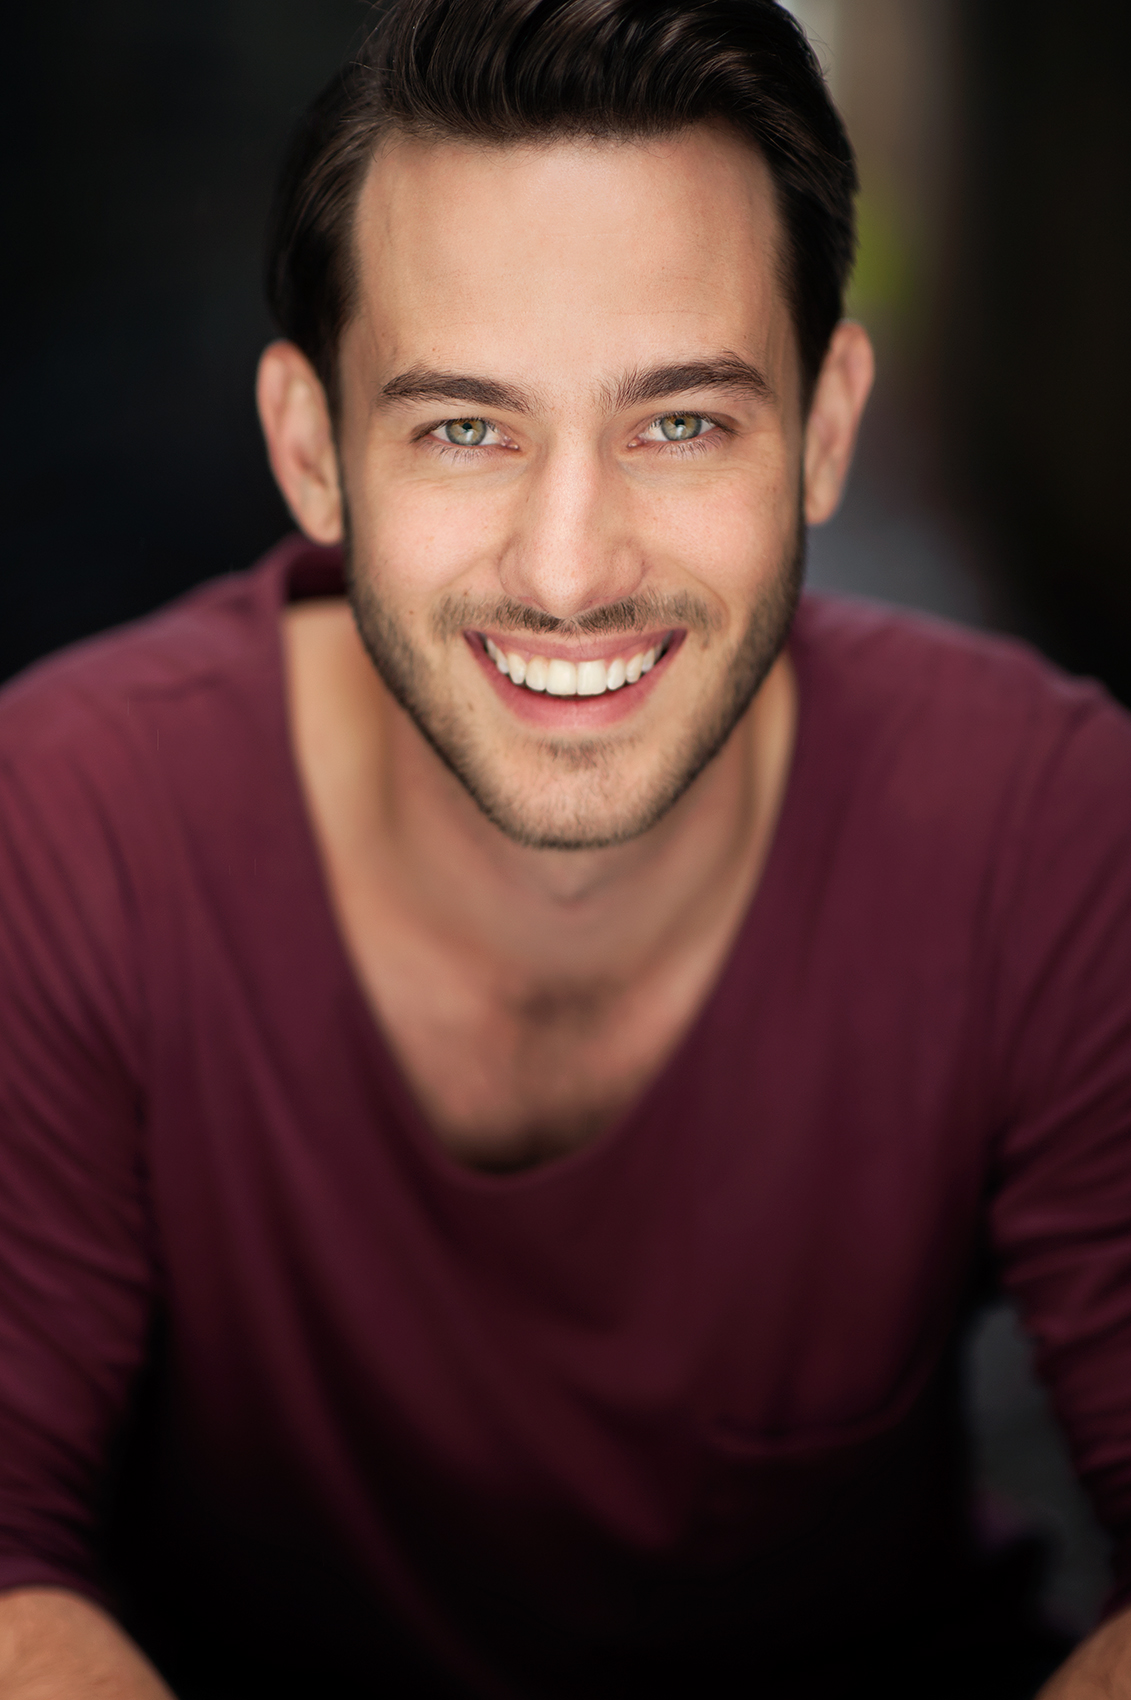 Understudy Productions founder - Alexander Woodward